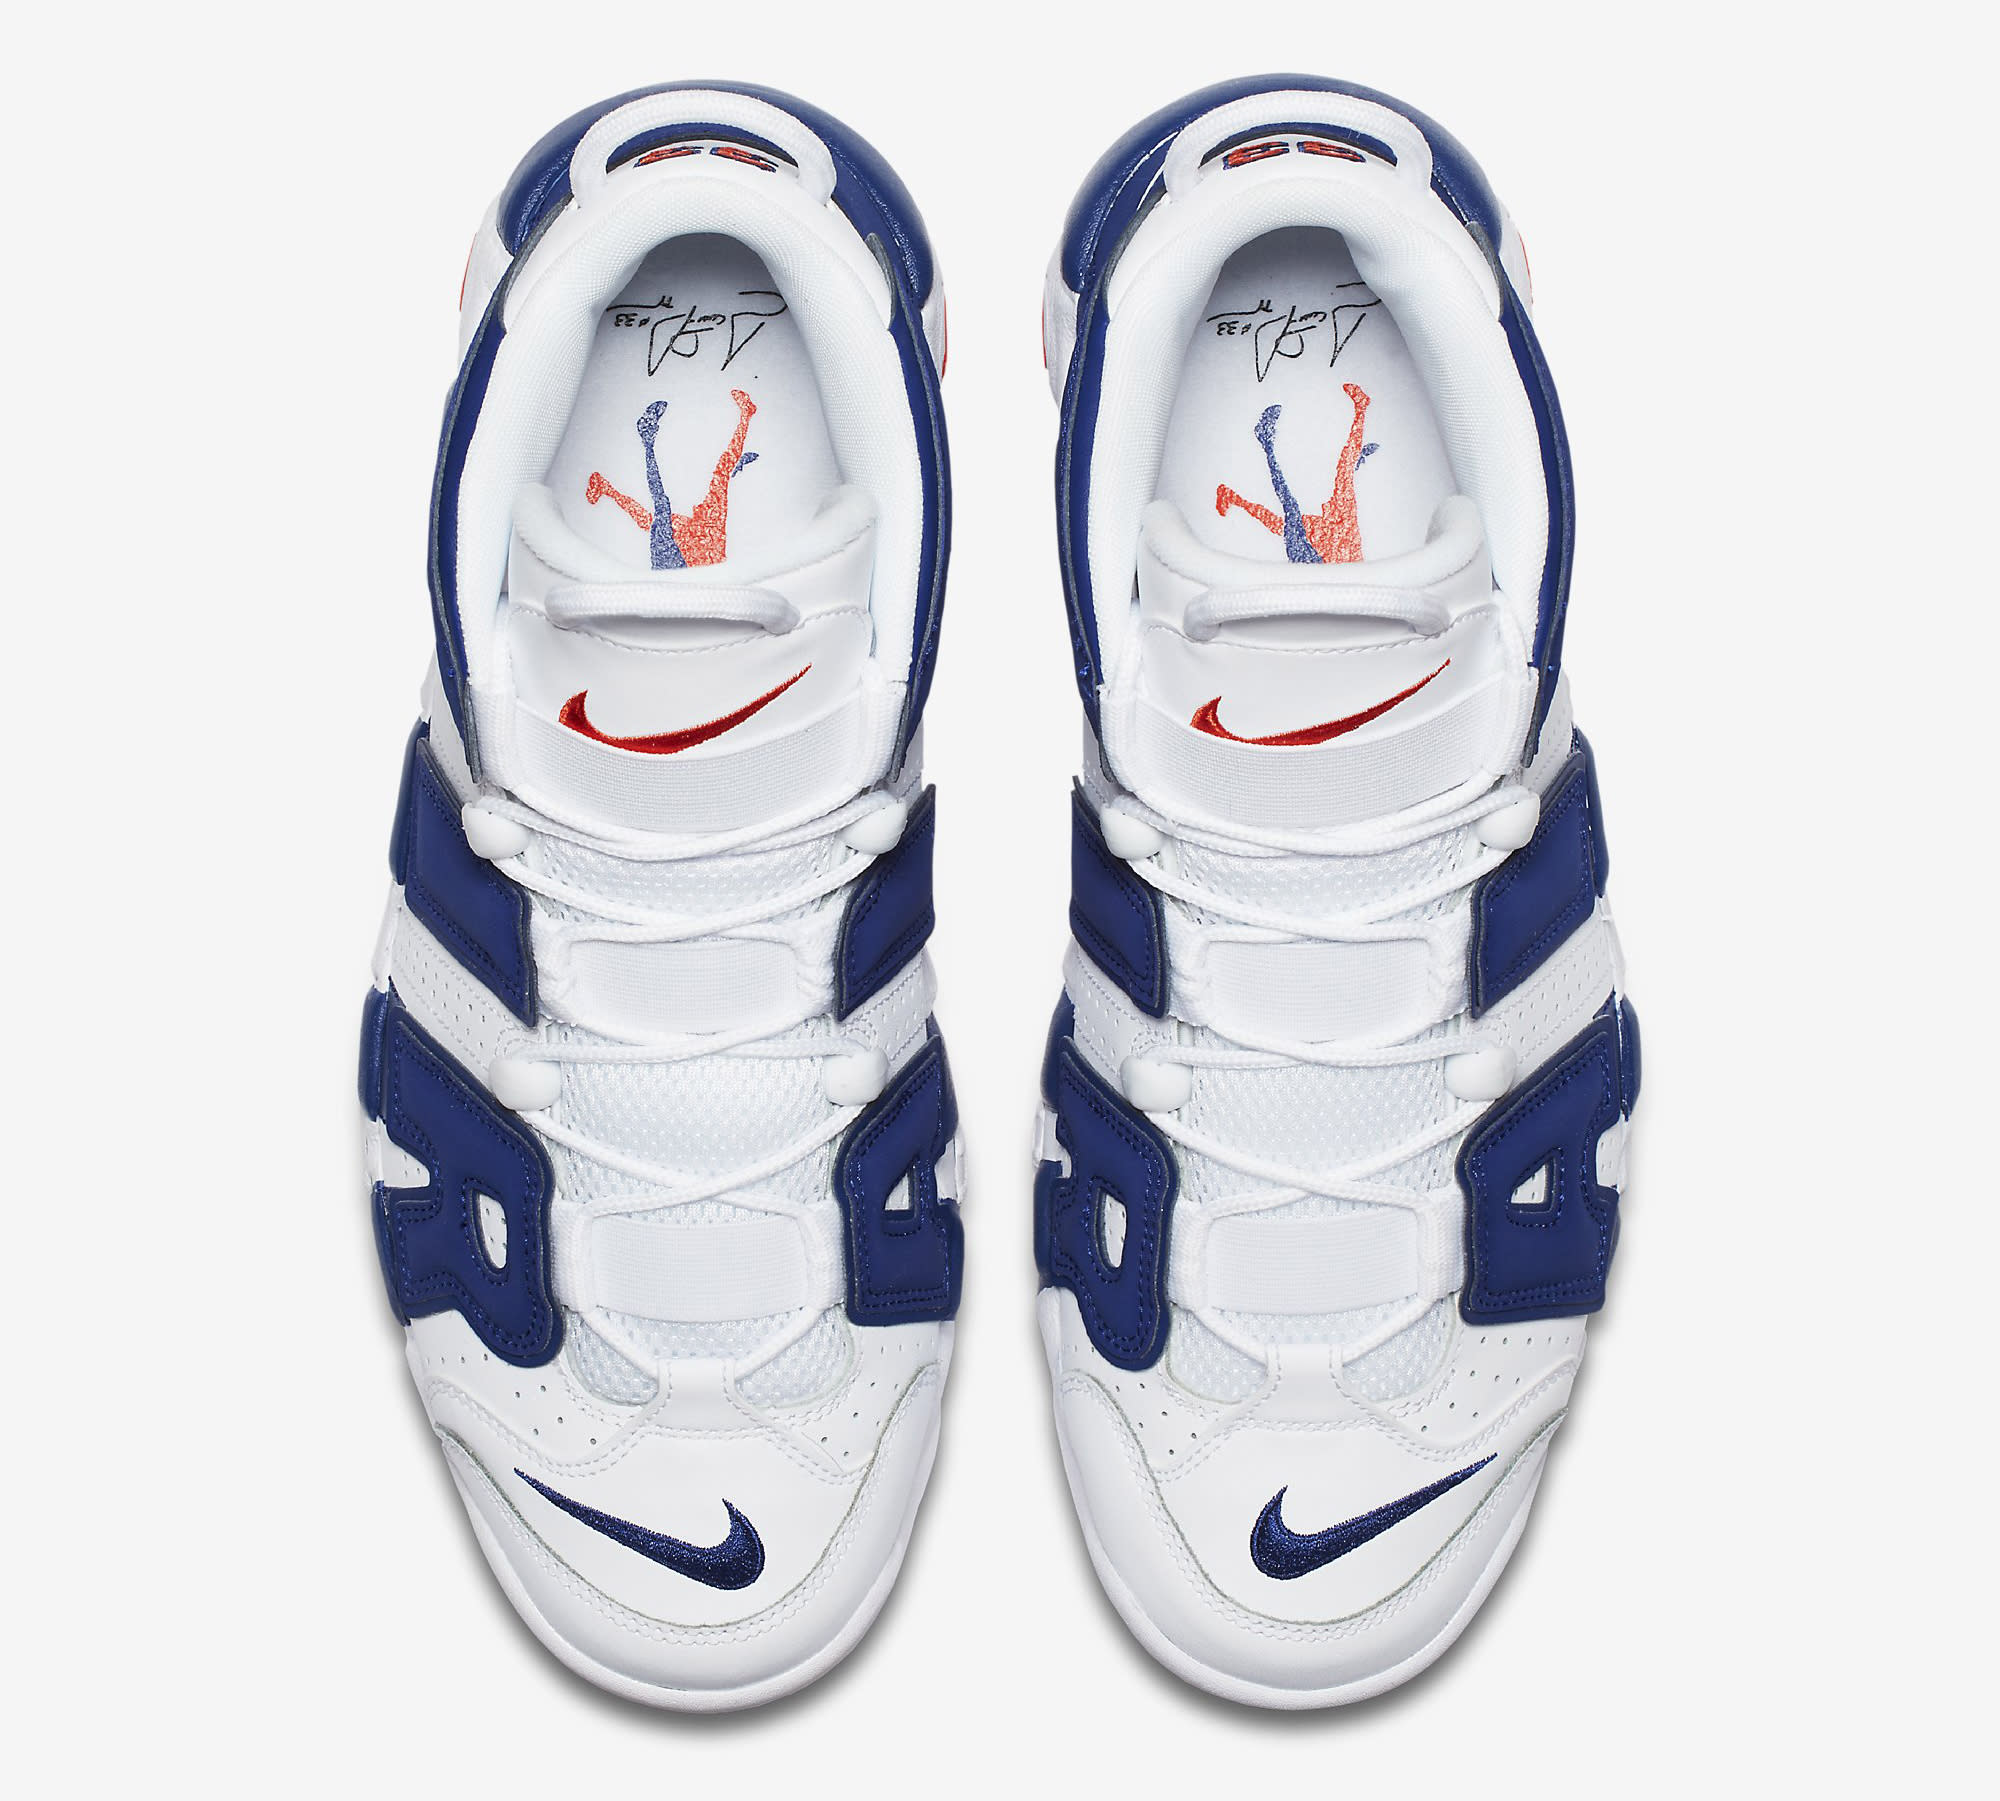 377095b1b1852 ... new zealand image via nike nike air more uptempo knicks 921948 101 top  d791a a1a13